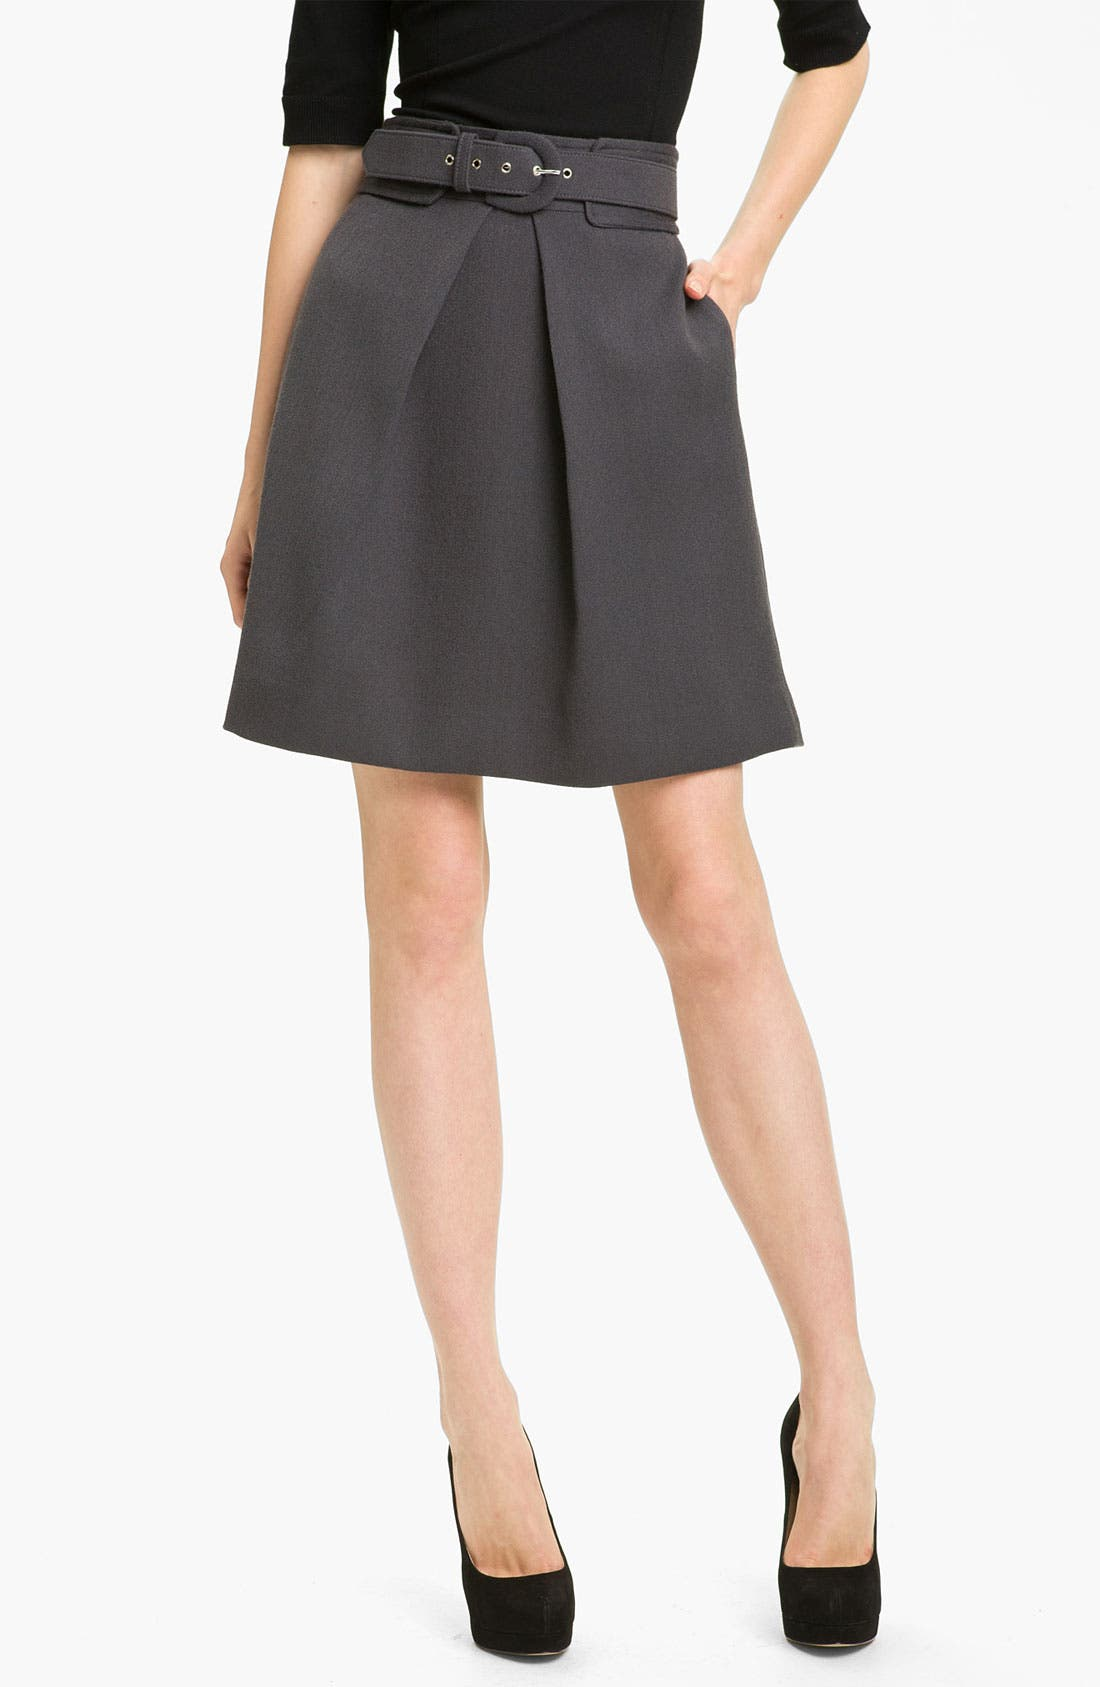 Alternate Image 1 Selected - Milly 'Aude' Wool Skirt